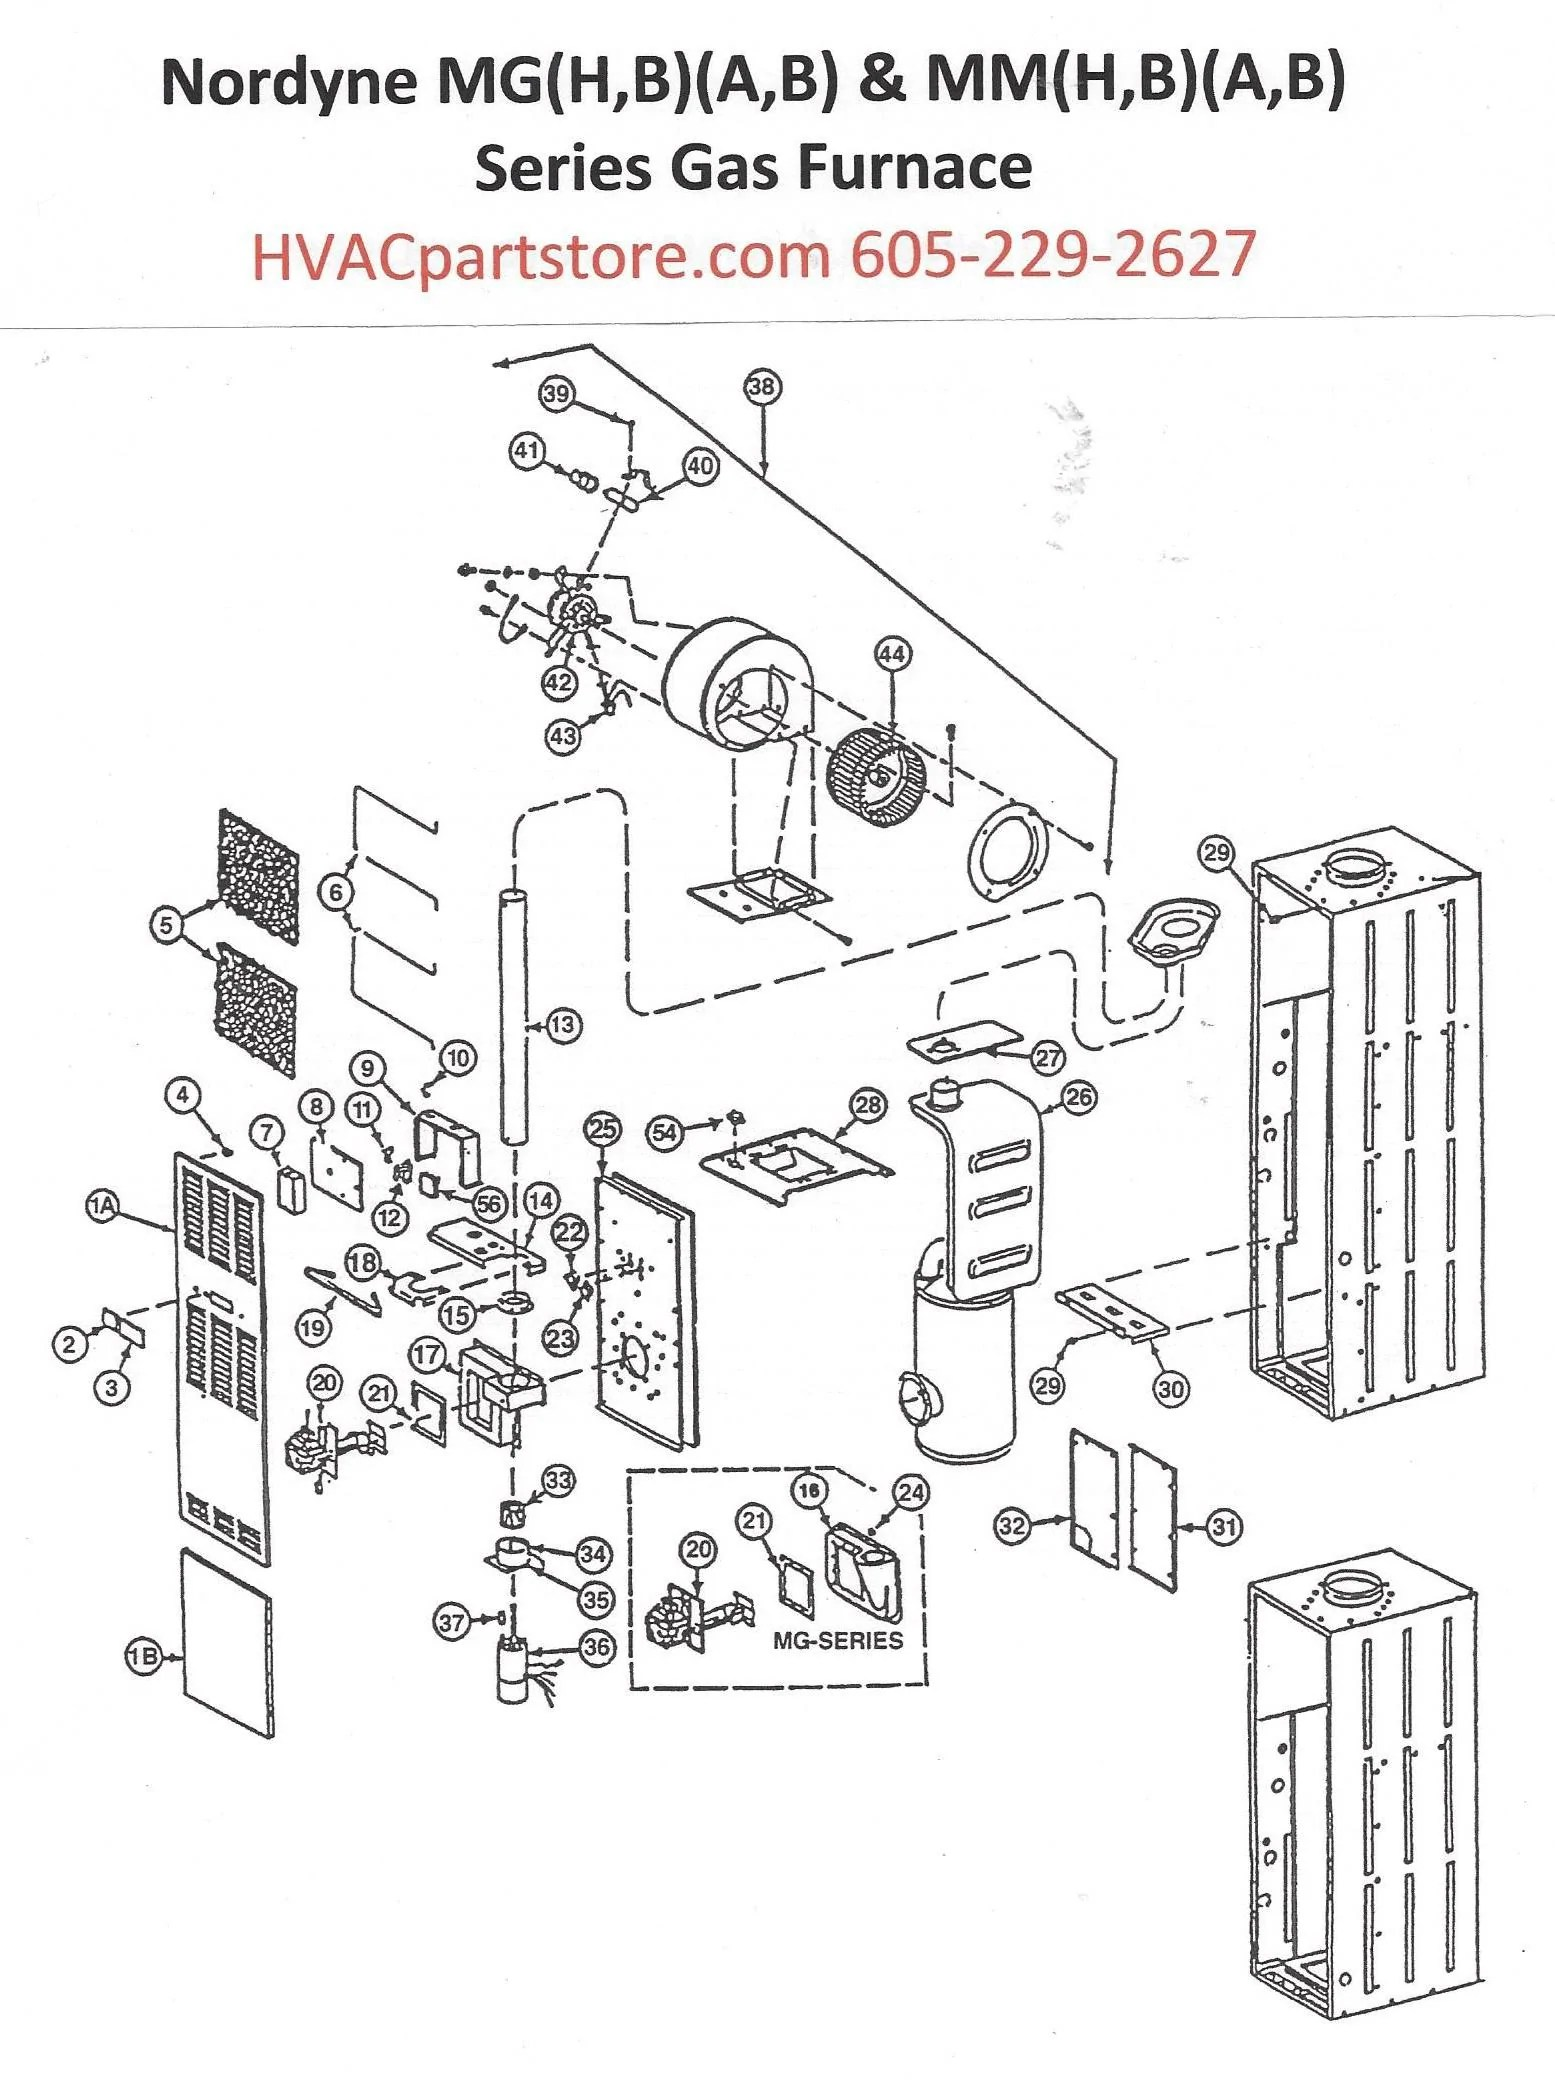 mgha077 nordyne gas furnace parts u2013 hvacpartstoremobile home intertherm furnace wiring diagram parts 10 [ 1555 x 2082 Pixel ]